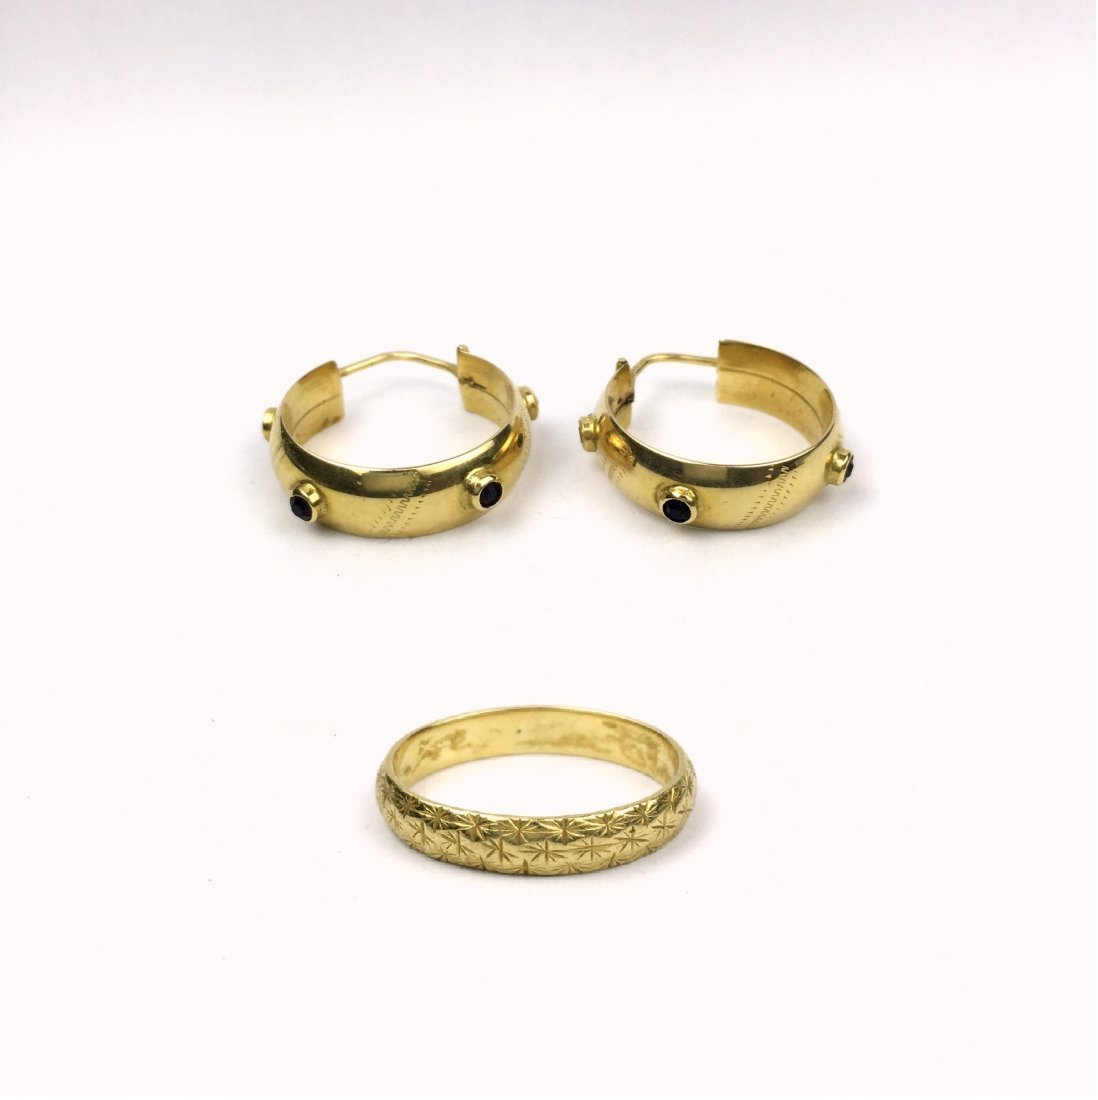 THREE PIECES IN 18K YELLOW GOLD